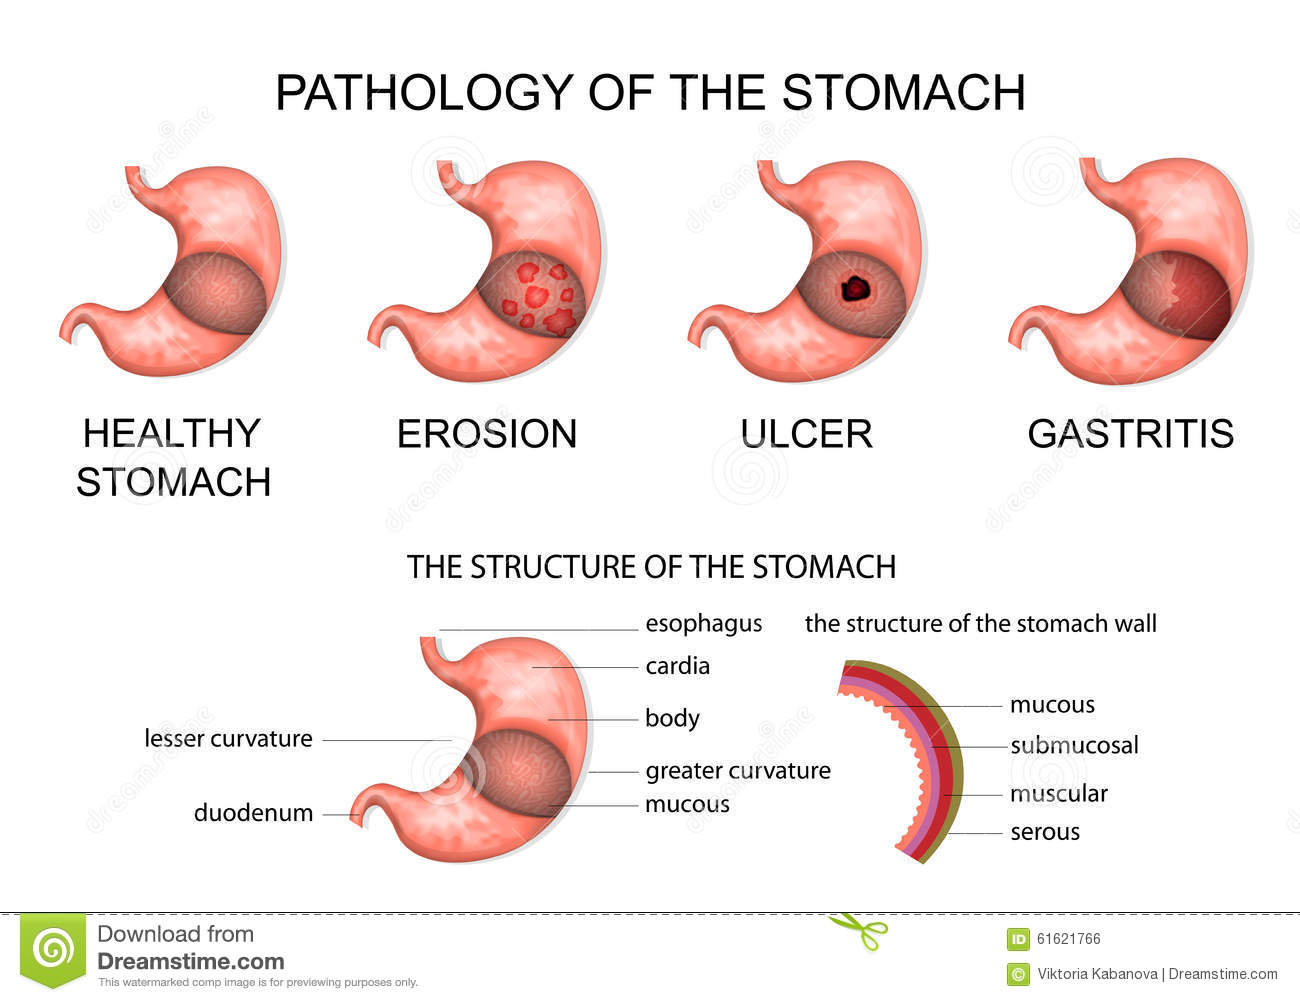 Stomach Erosion Stock Illustrations – 115 Stomach Erosion Stock  Illustrations, Vectors & Clipart - Dreamstime